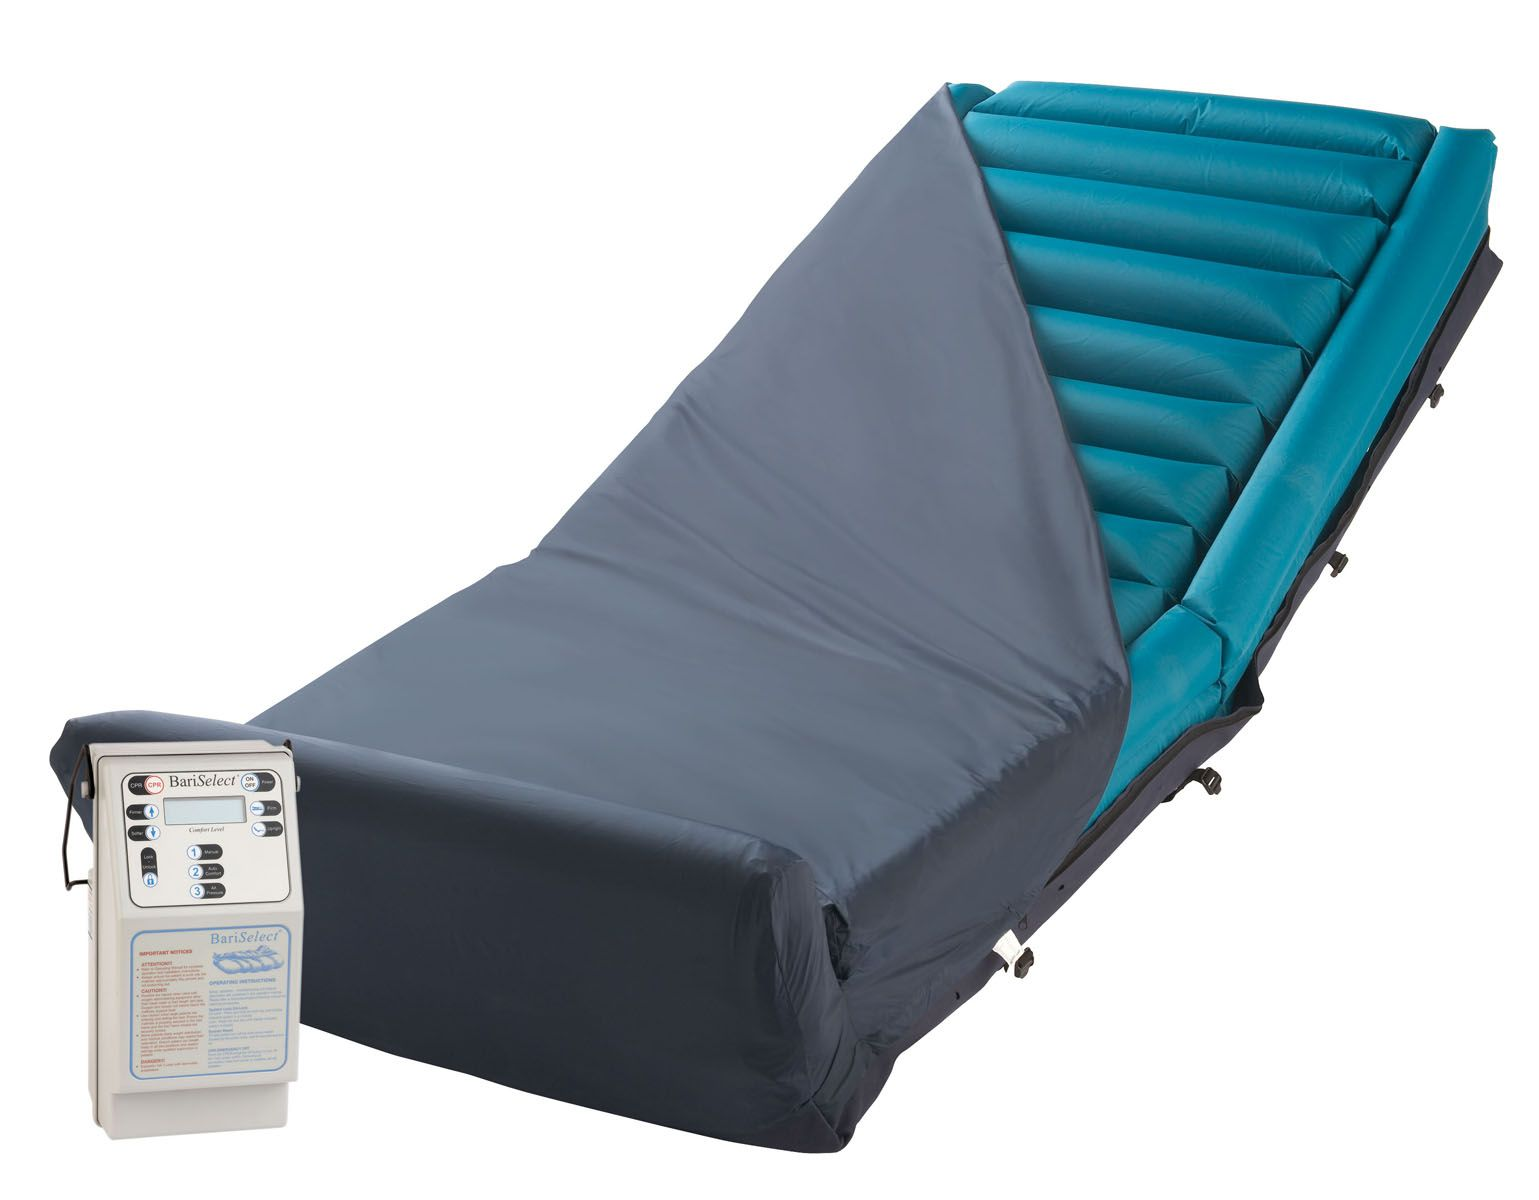 Medline MedTech Bariatric Mattress - True Low Air Loss, Bariselect, 42X80X10, Each - Model MDT24B42